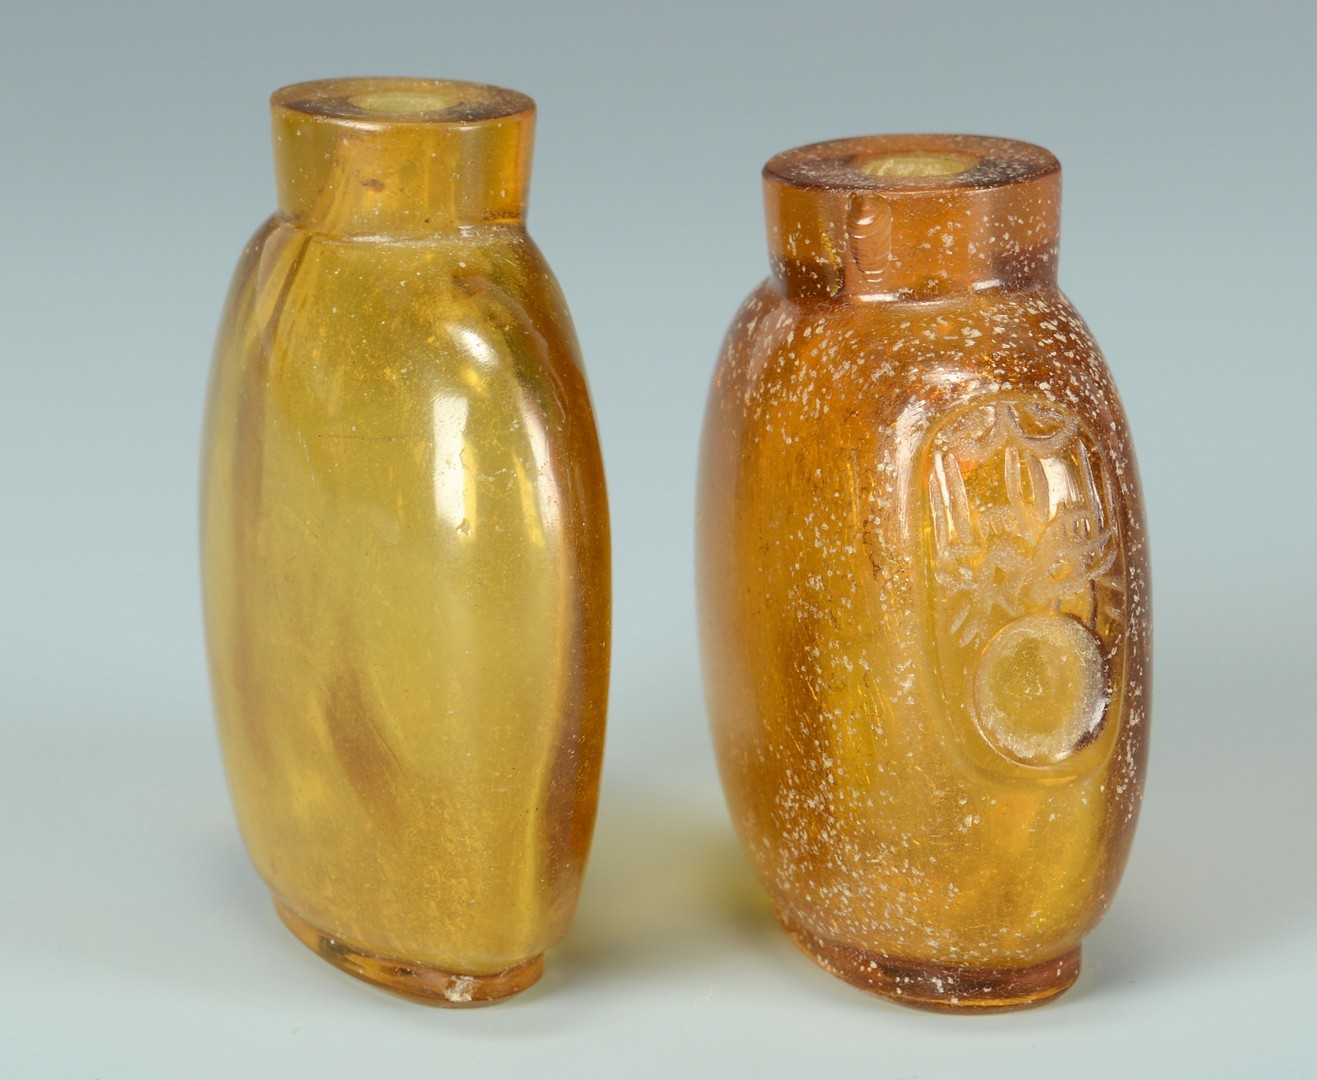 Lot 3383144: Two Amber Snuff Bottles